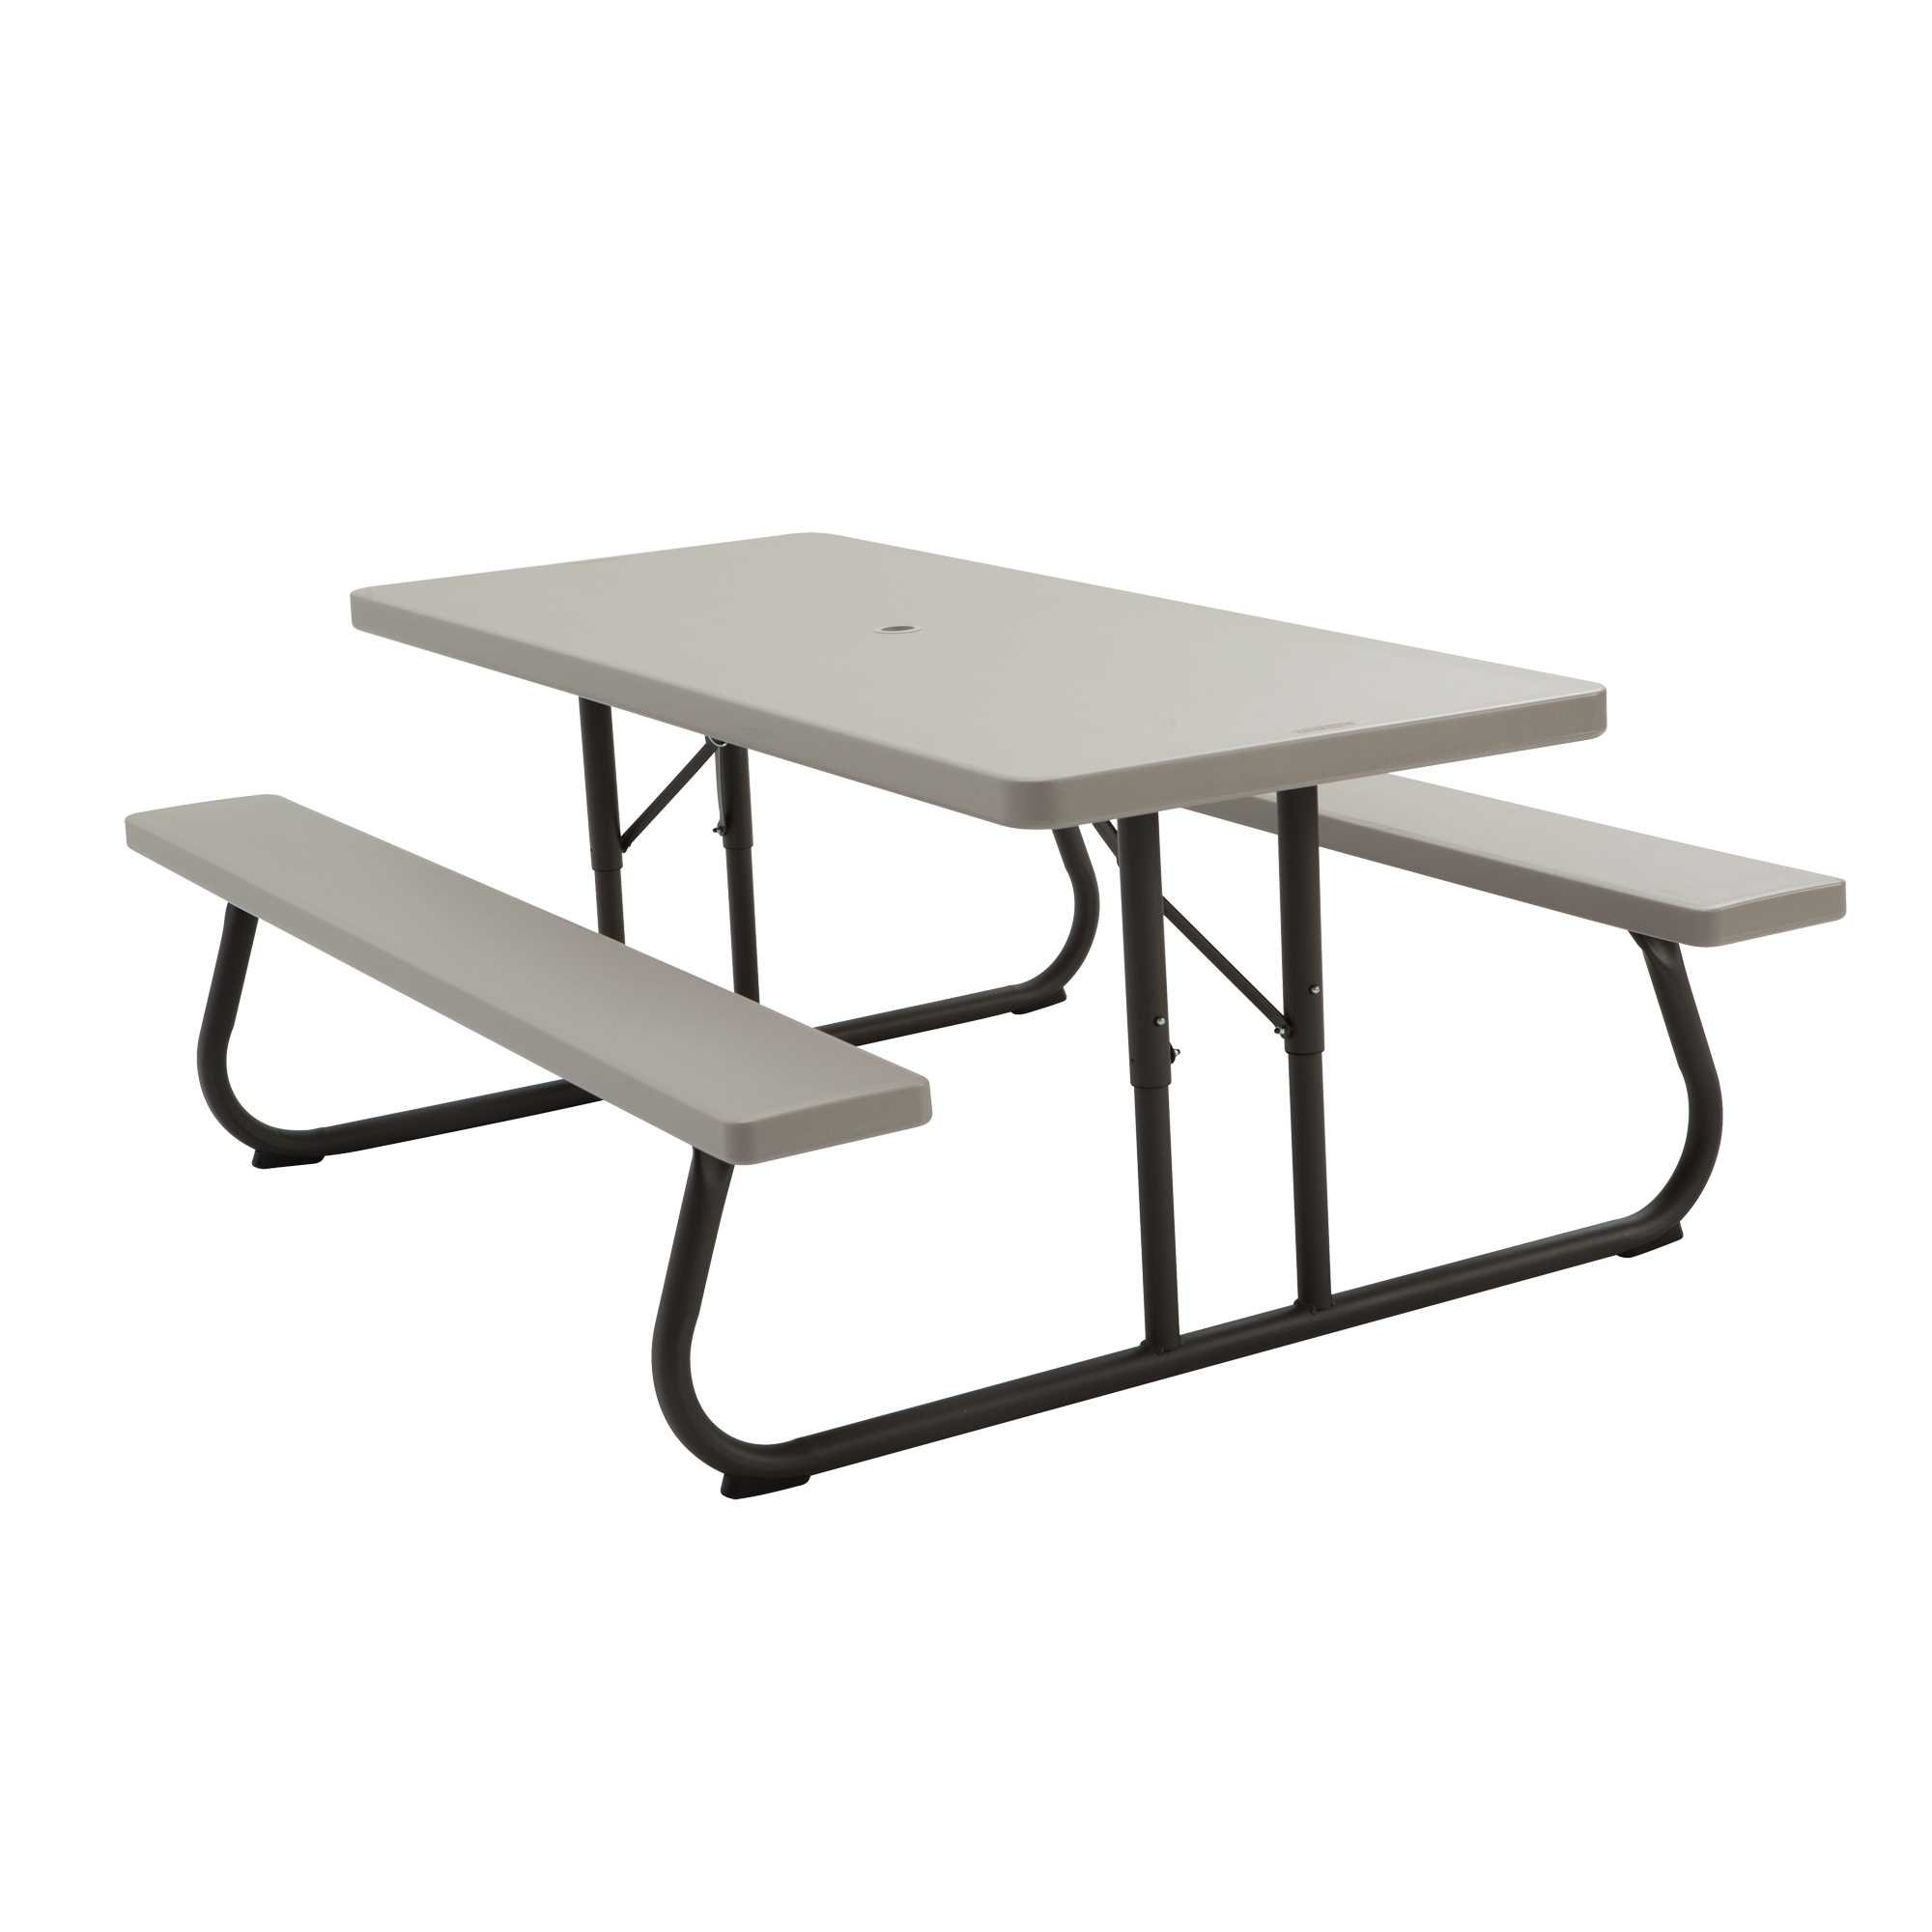 Lifetime 22119 Folding Picnic Table, 6 Feet, Putty by Lifetime